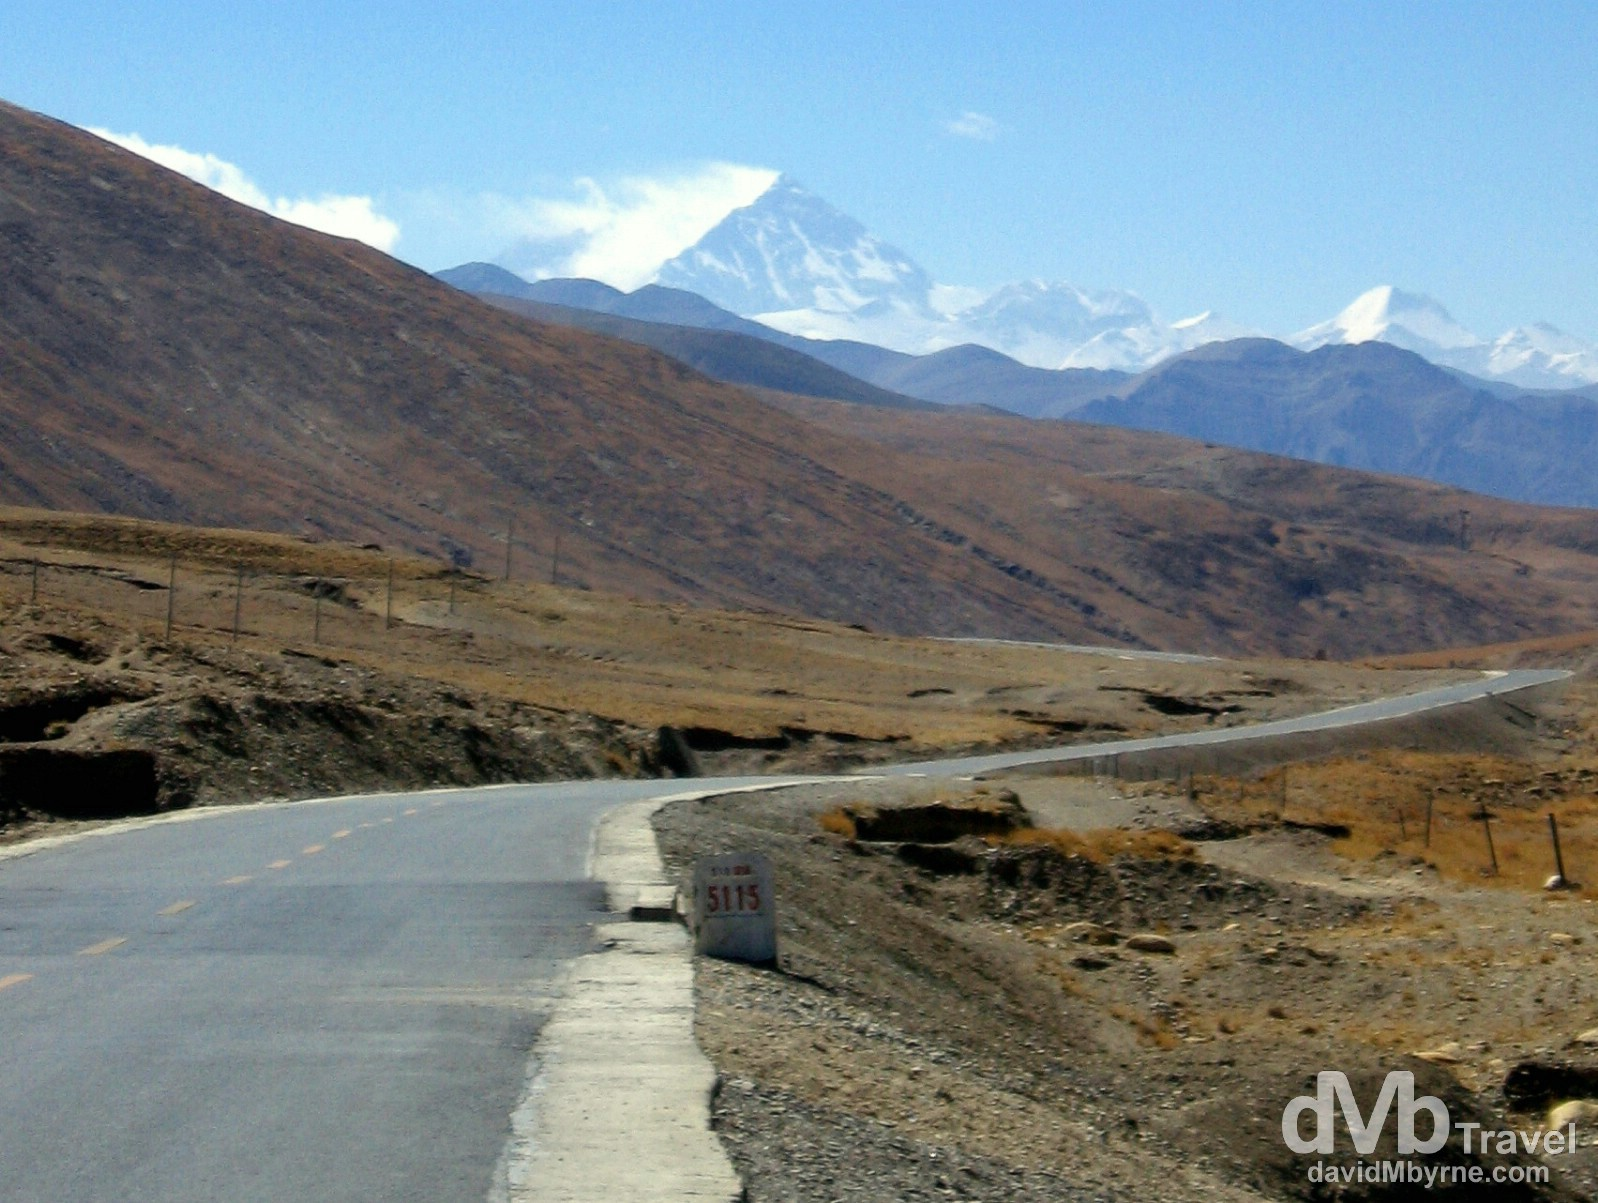 First look at Everest from the 5115 kilometre marker (distance from Shanghai) on The Friendship Highway, Tibet. March 2nd, 2008.